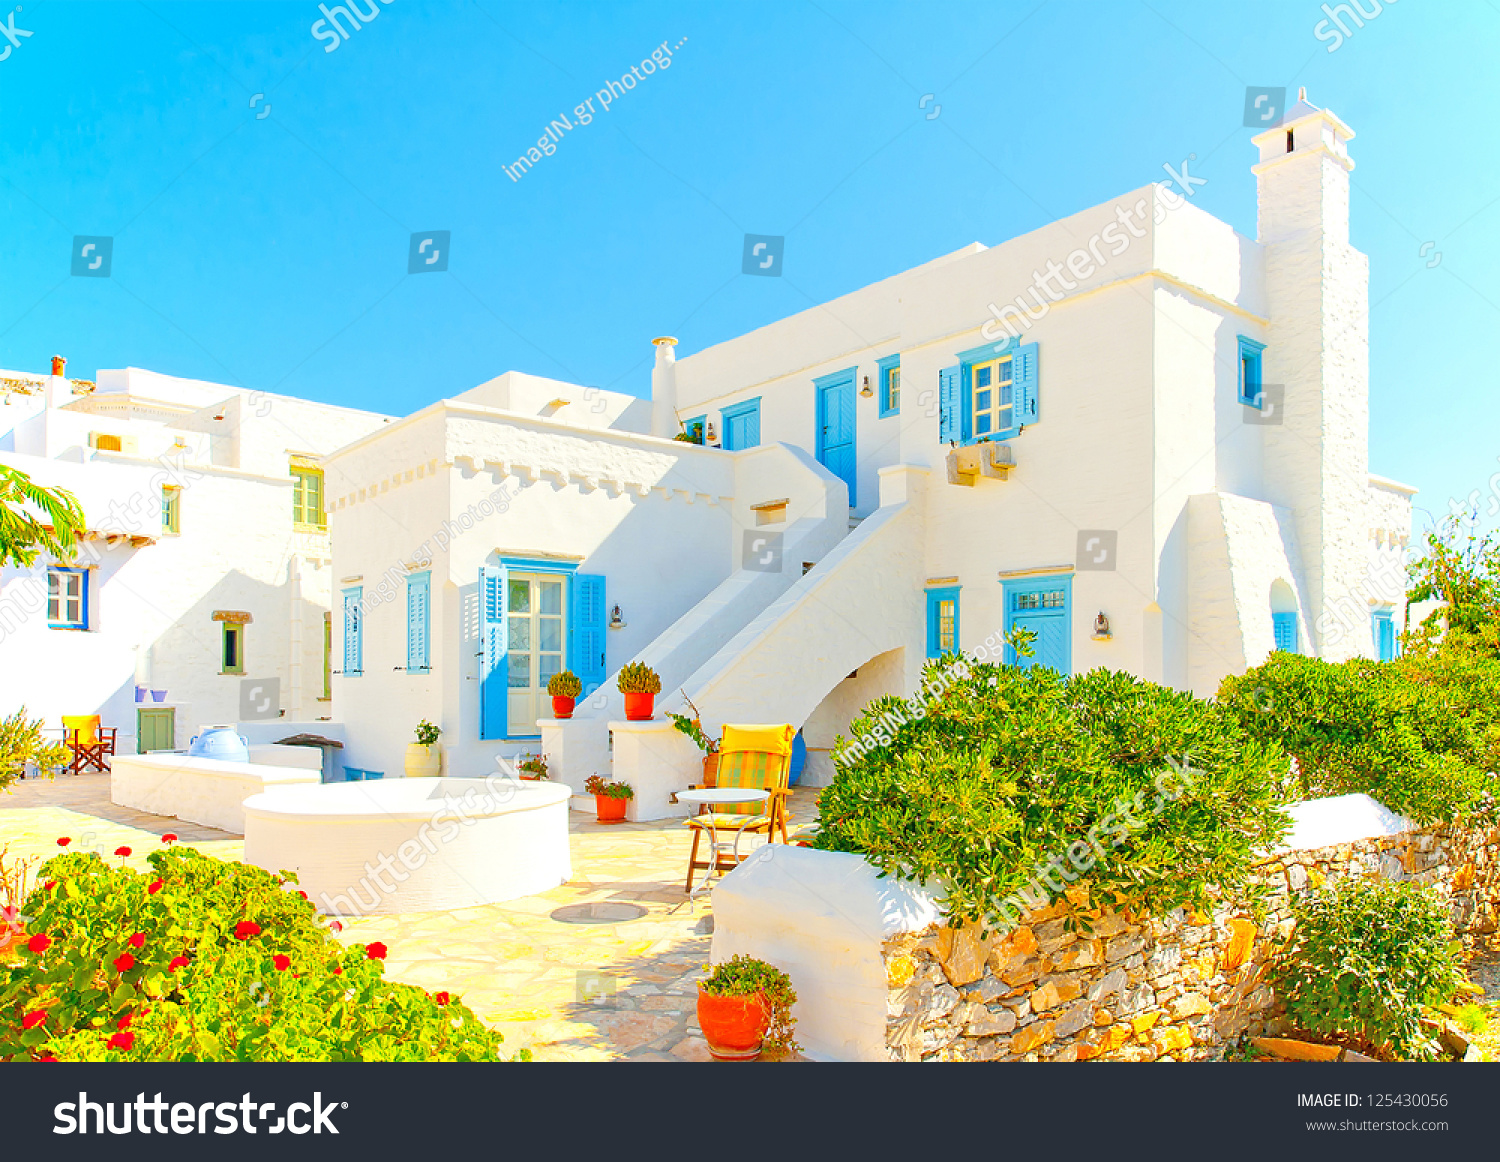 Old beautiful traditional house in chora the capital of amorgos island - Beautiful Complex Of Traditional Old Houses With Blue Colored Doors And Windows In Chora The Capital